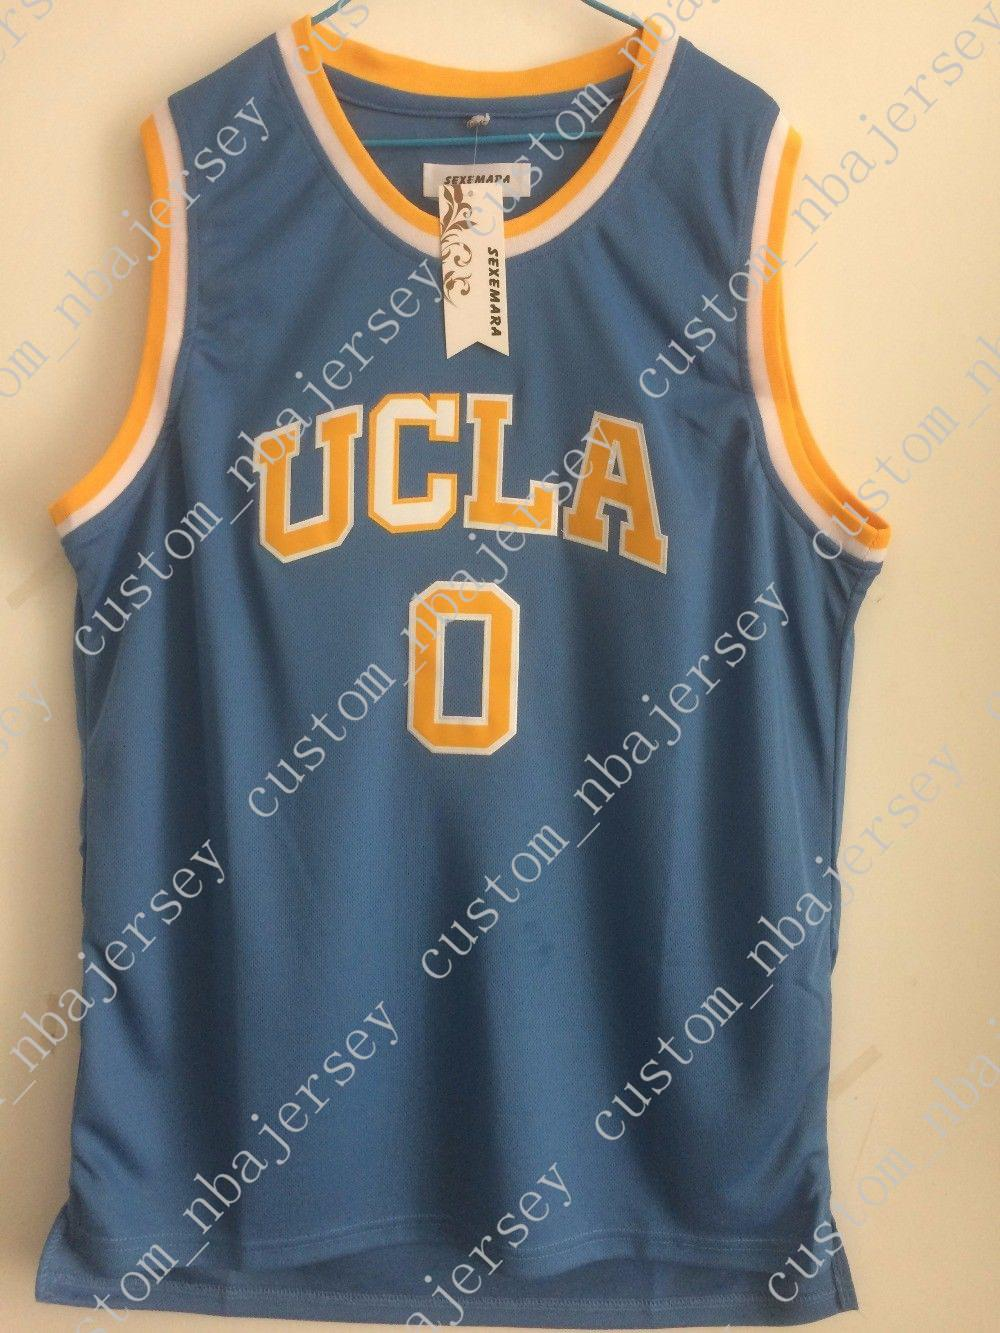 new arrivals 418c0 fa4a9 Cheap custom Westbrook Jersey #0 Ucla Basketball Jerseys Retro Stitched  Customize any name number MEN WOMEN YOUTH JERSEY XS-5XL